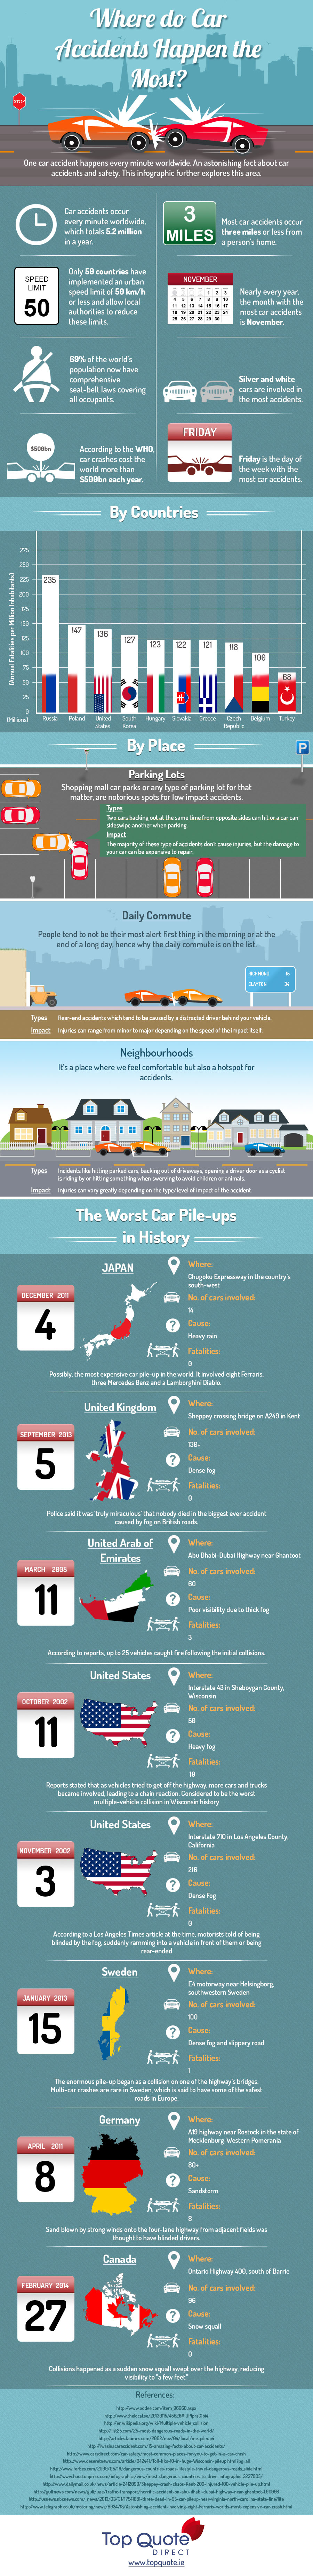 Astonishing-Facts-about-Car-Accidents-and-Safety-infographic-plaza